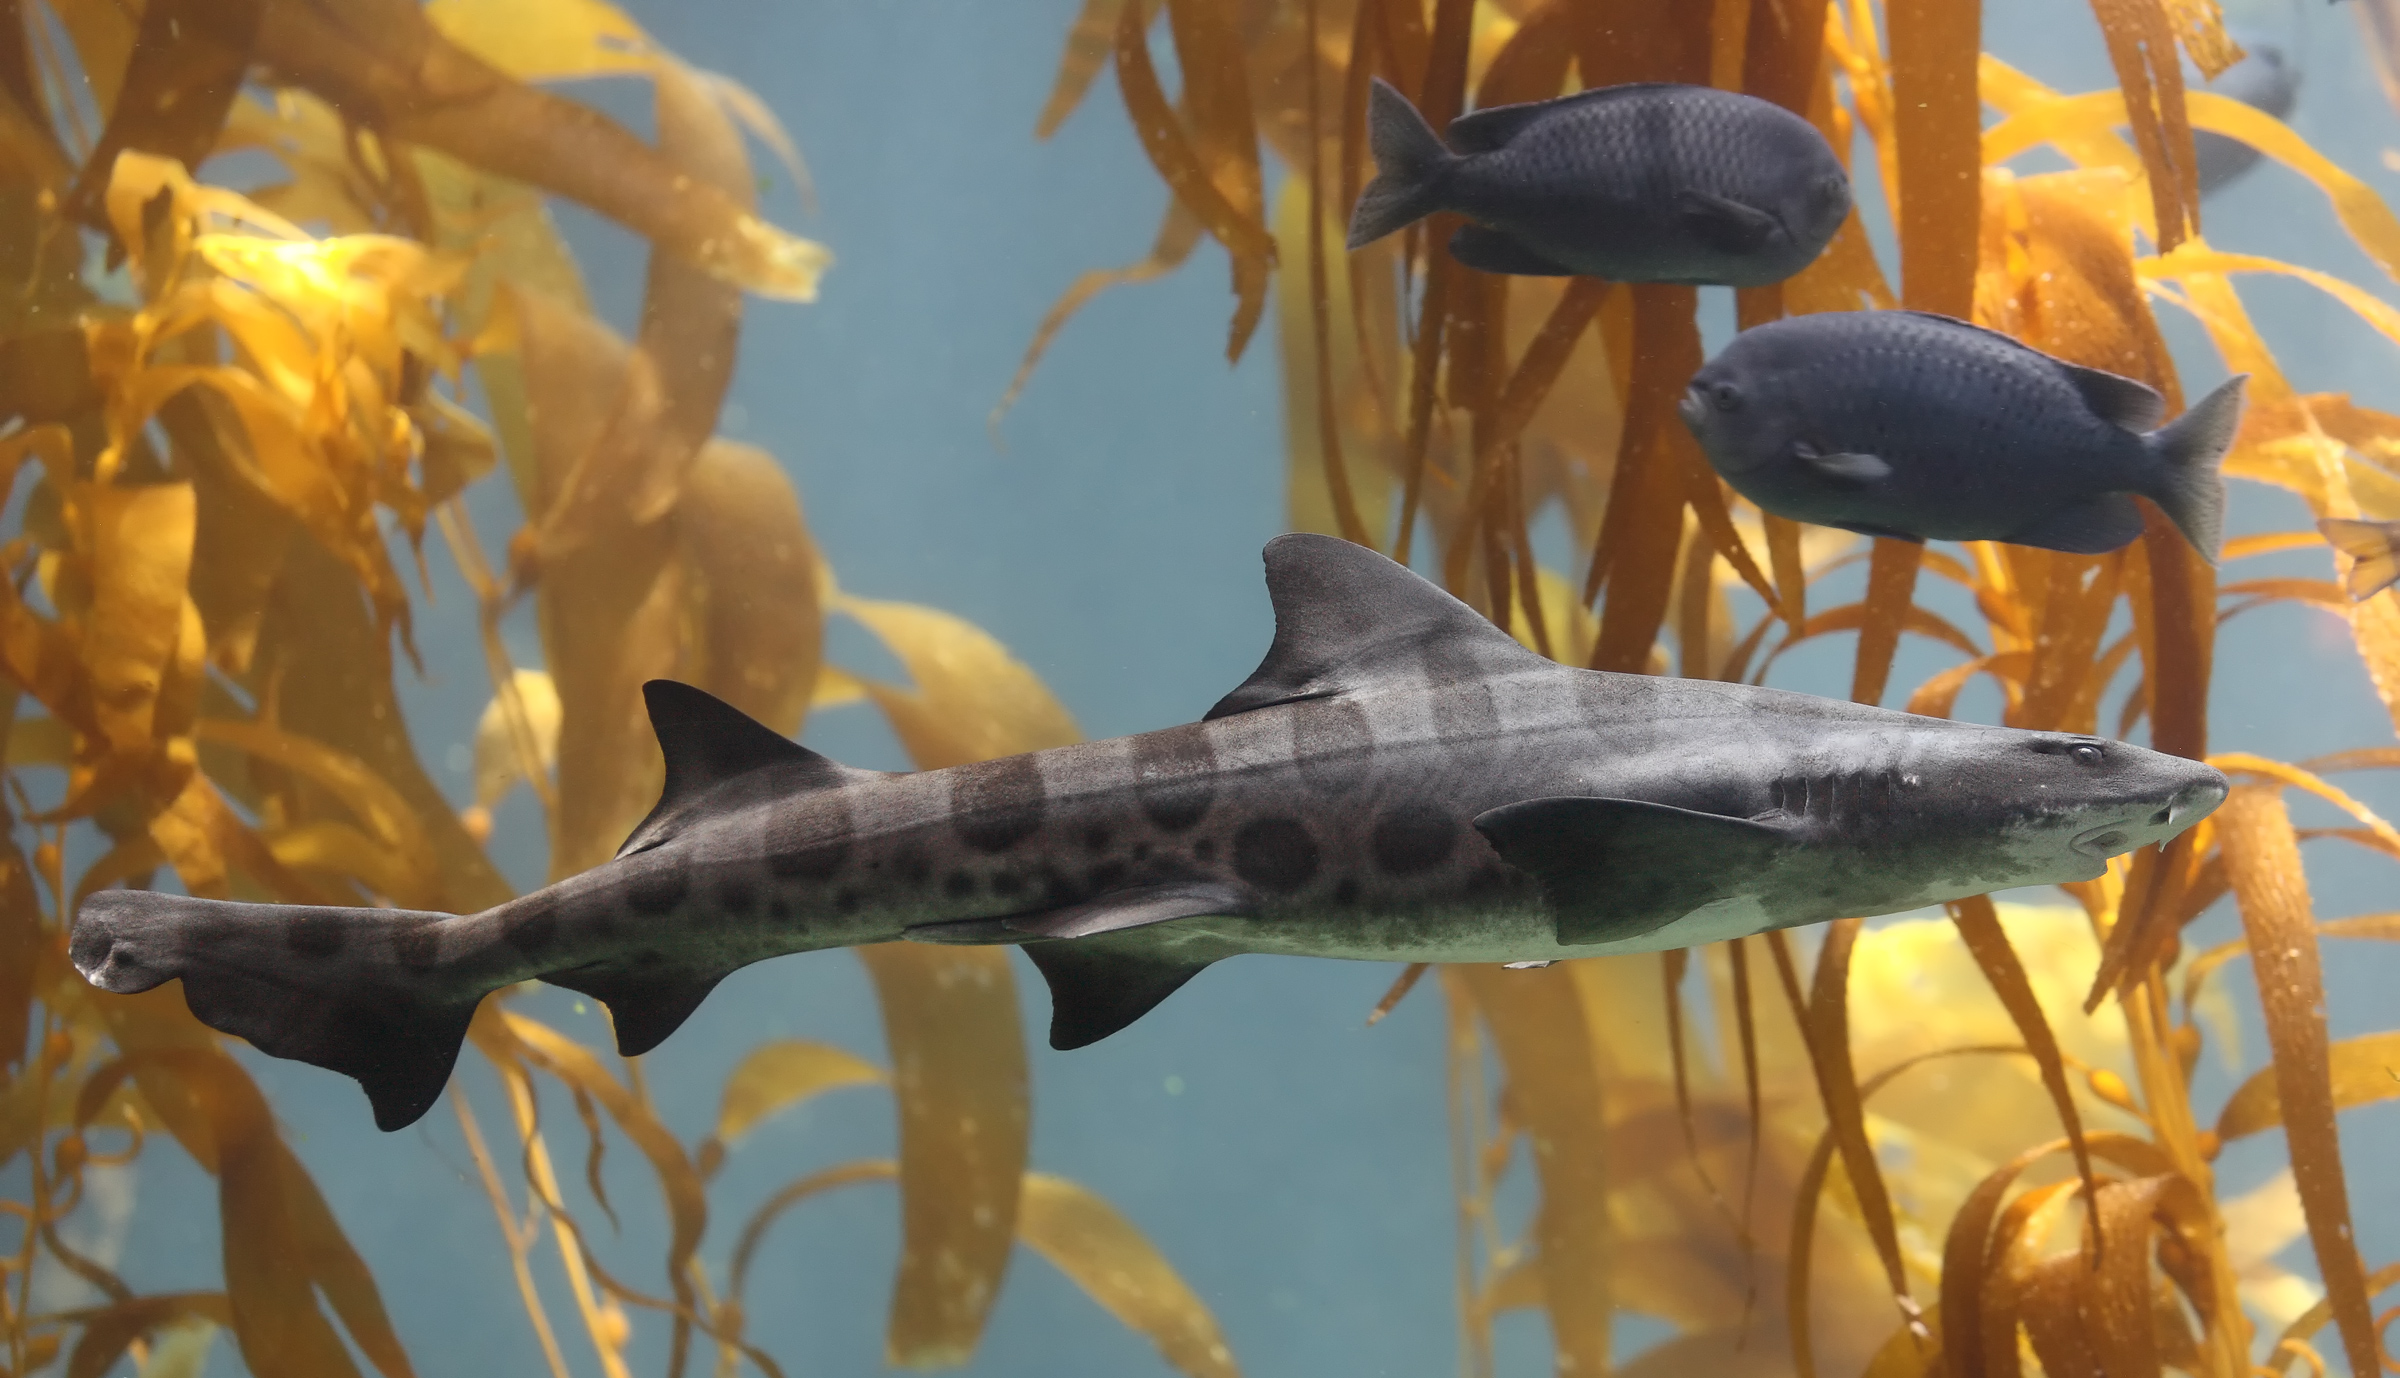 https://commons.wikimedia.org/wiki/File%3ALeopard_shark_in_kelp.jpg